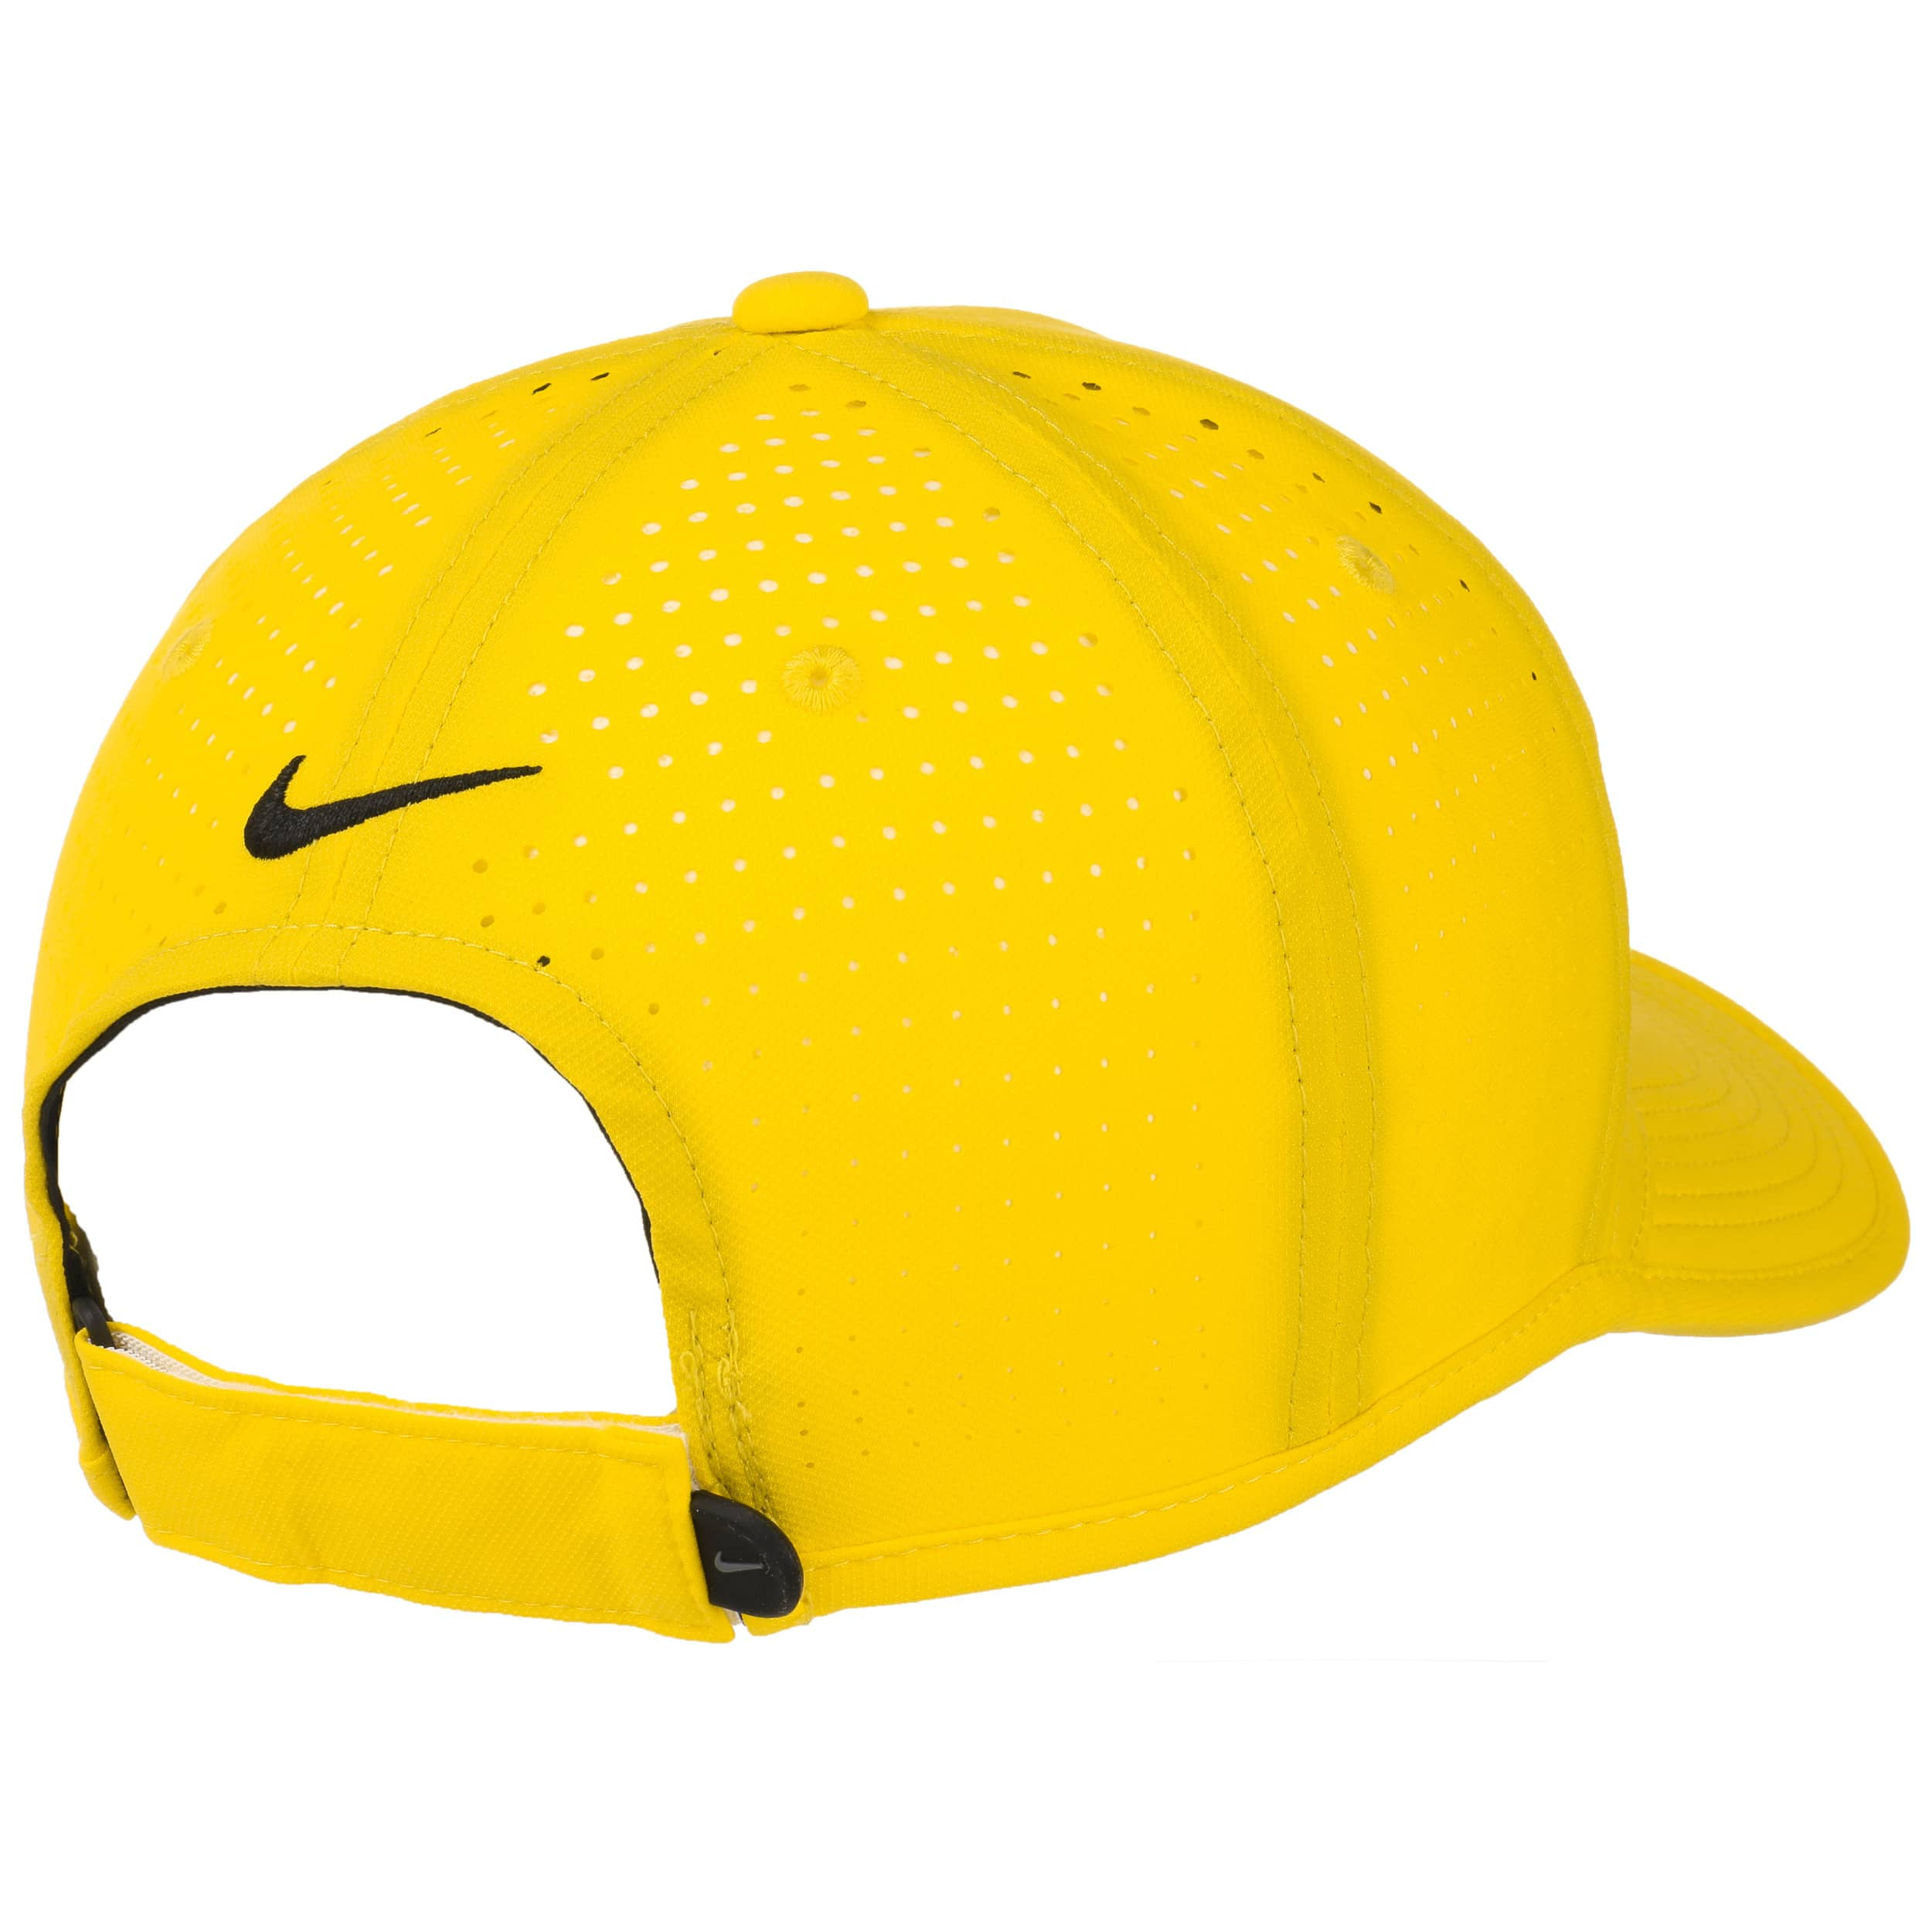 defe6e0f89c ... Ultralight Tour Perforation Cap by Nike - yellow 3 ...